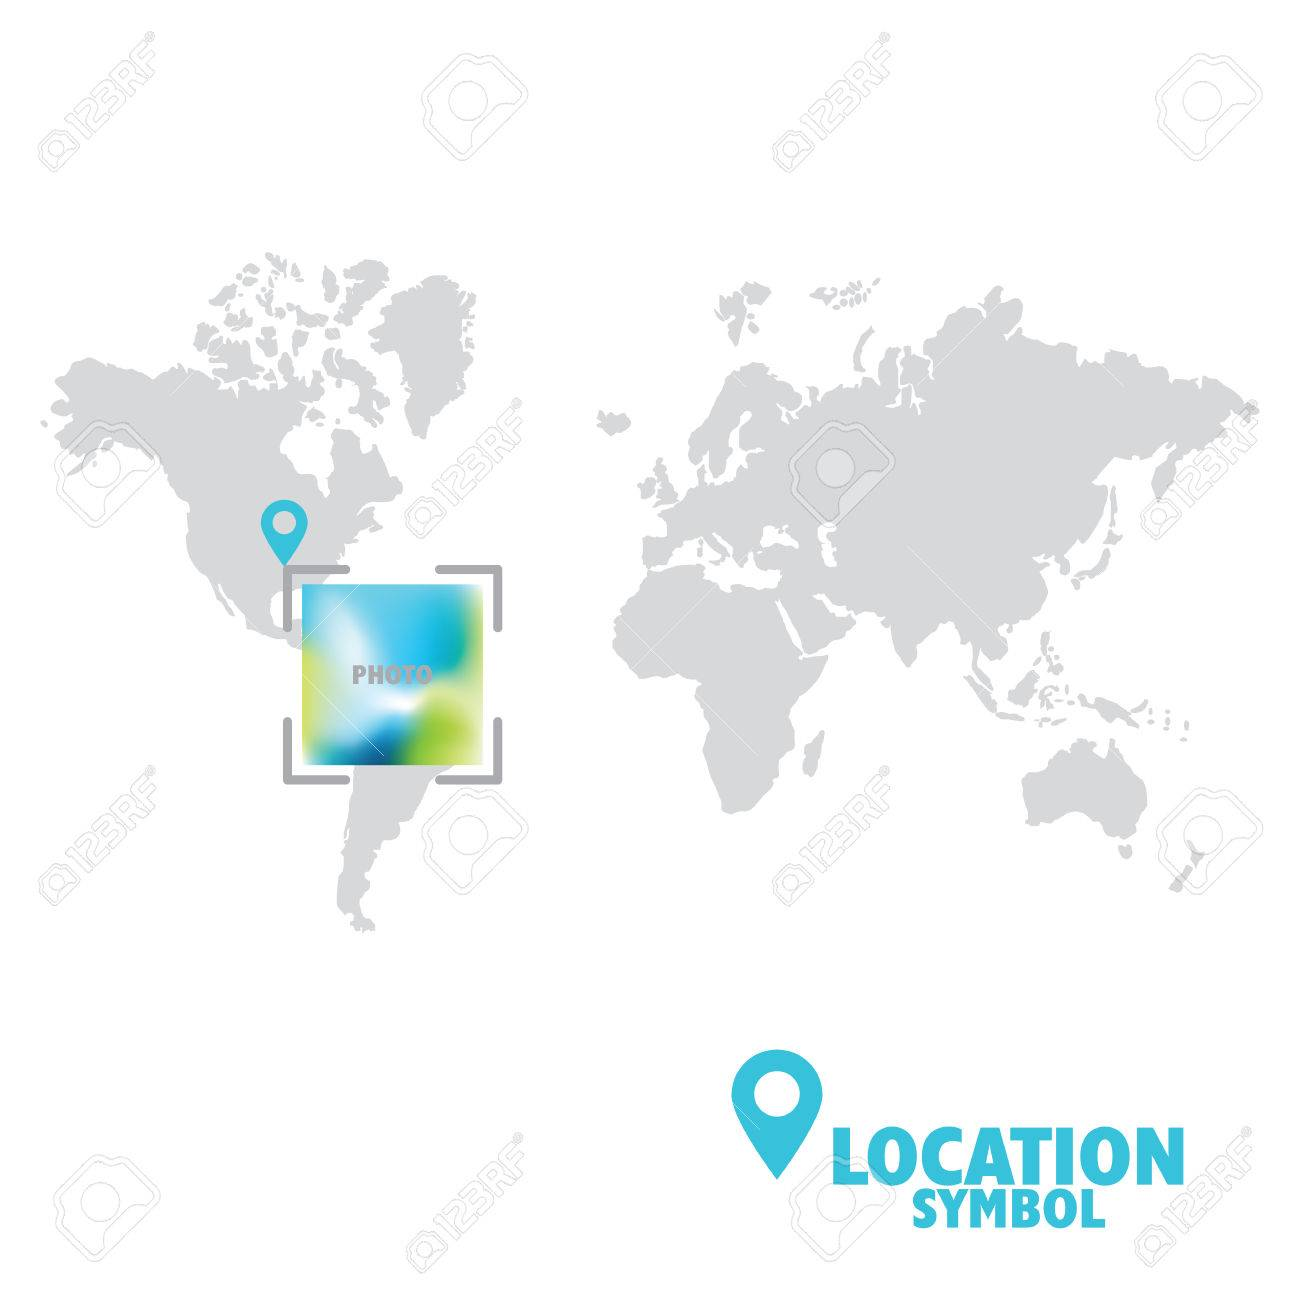 World Map Gps.Location Symbol Map Pointer Gps Location Icon World Map Royalty